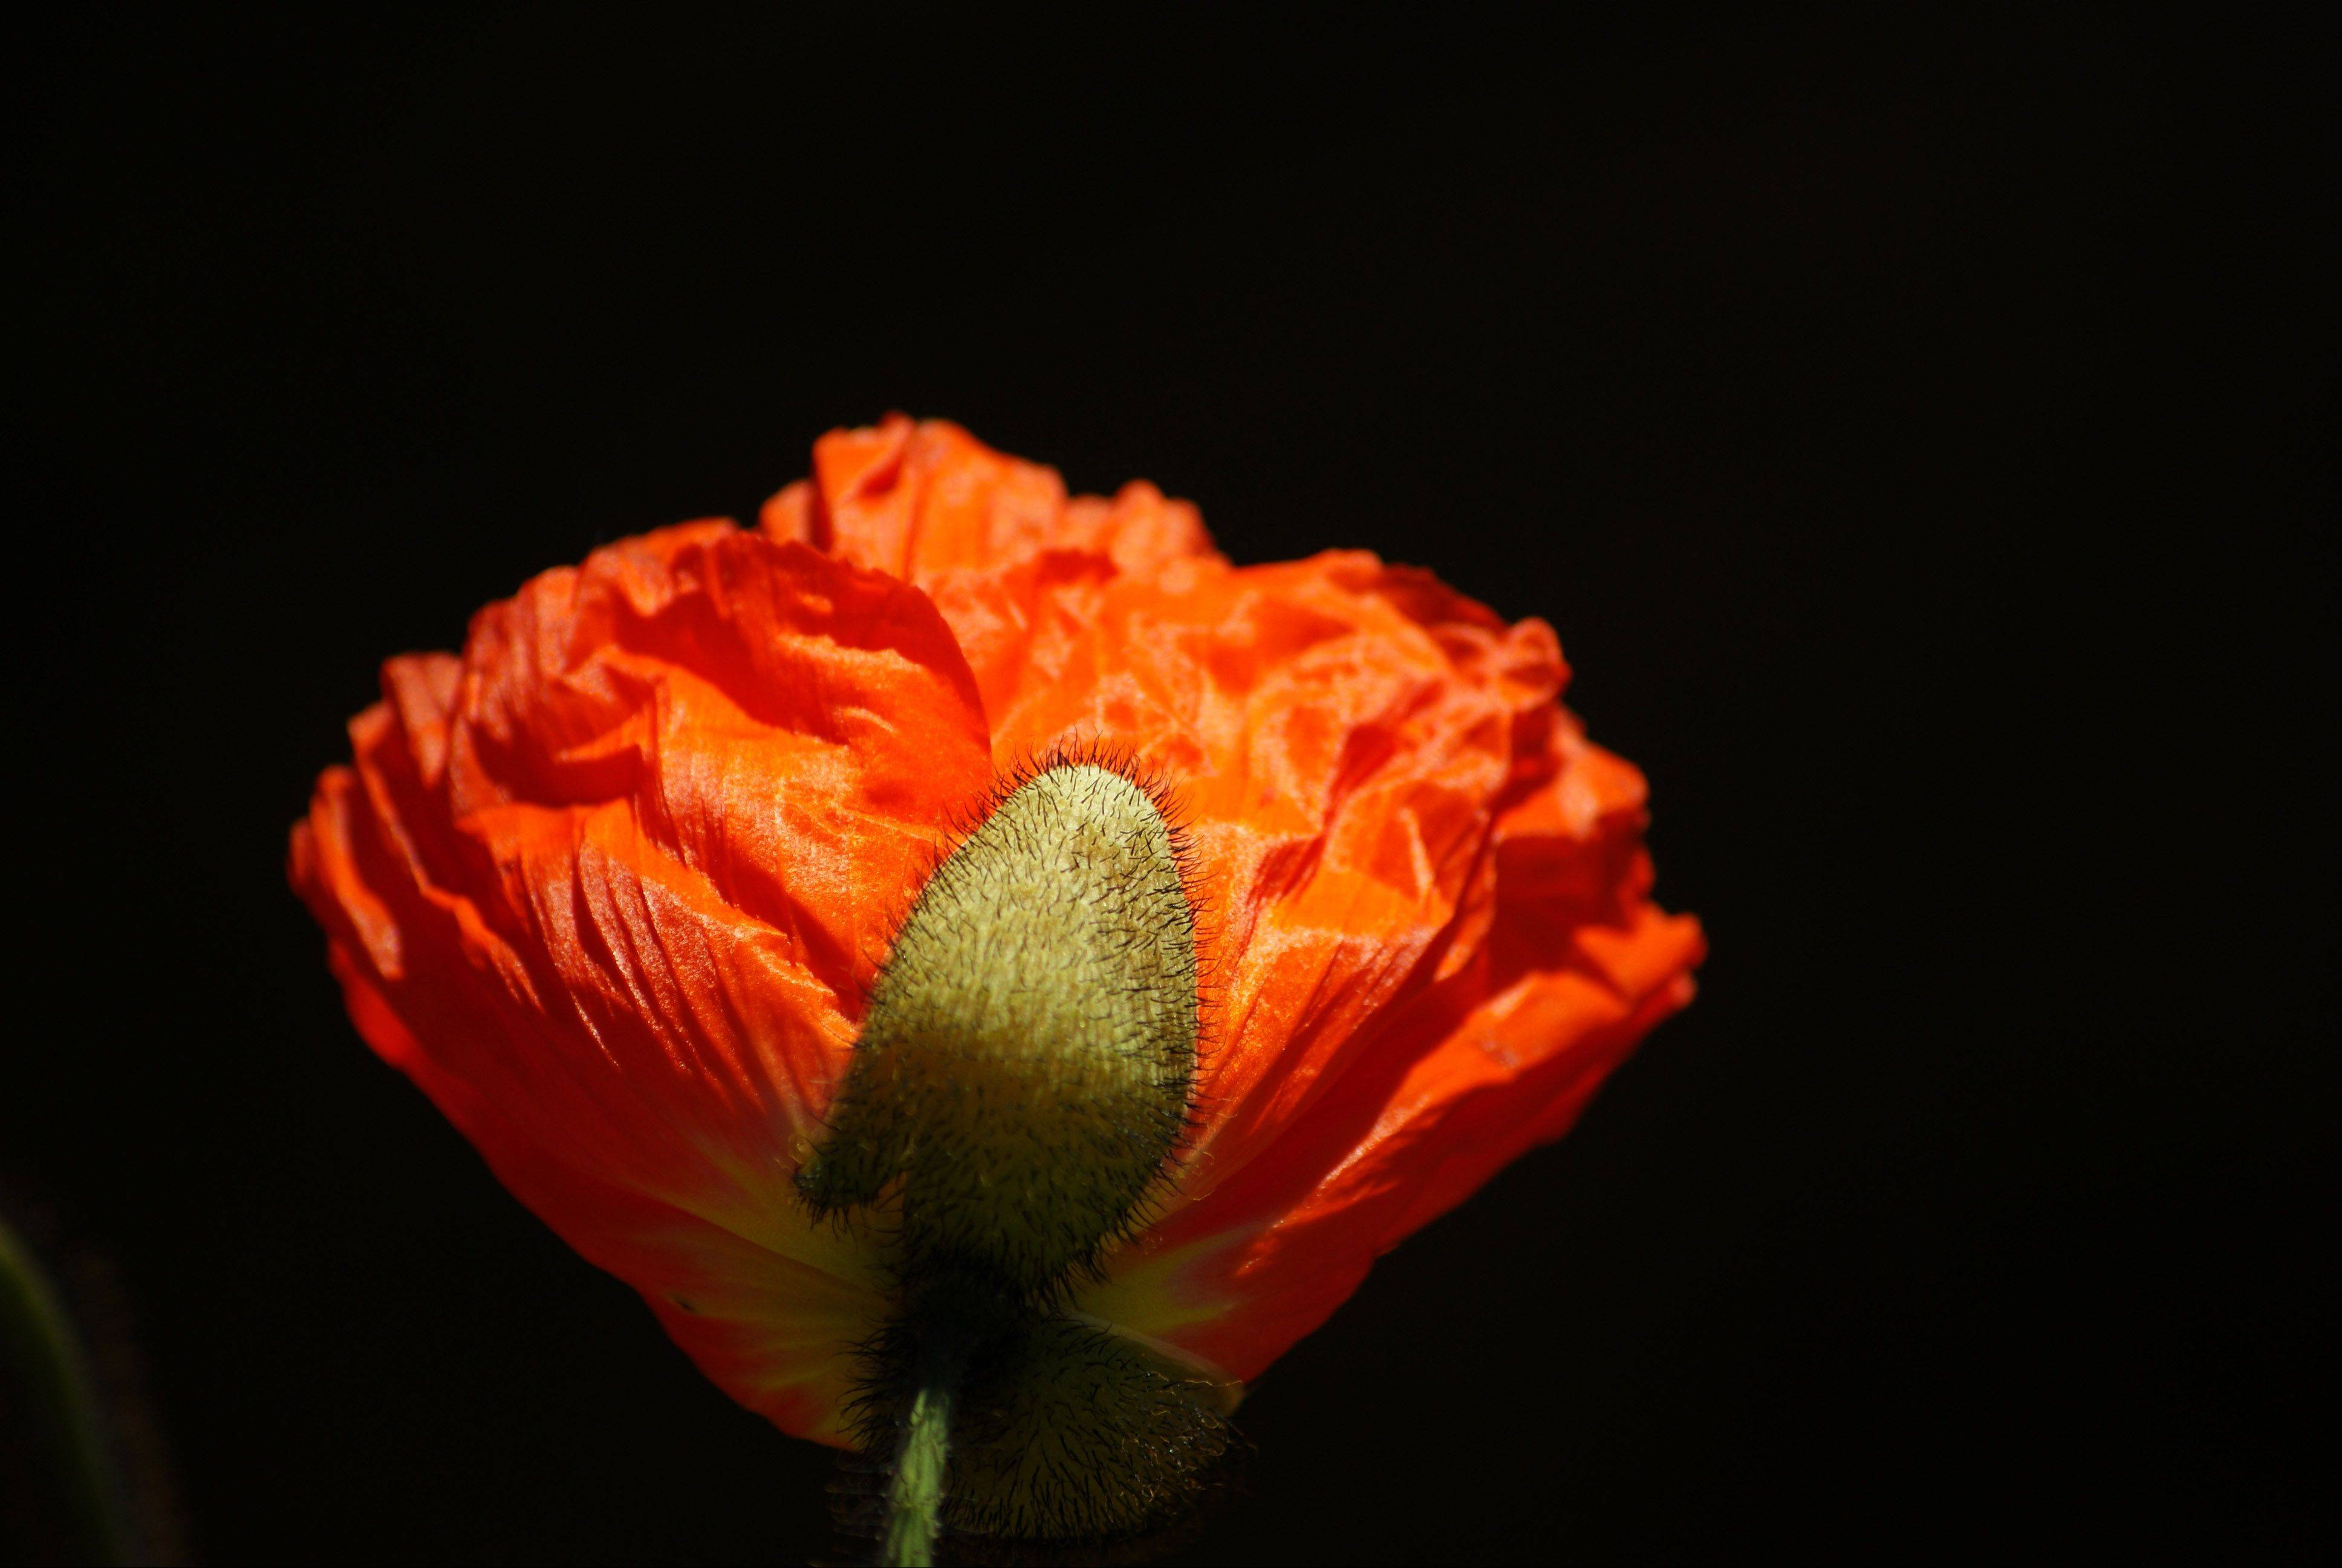 A bright, orange poppy blooms into a beautiful flower at the Chicago Botanic Garden in Glencoe.